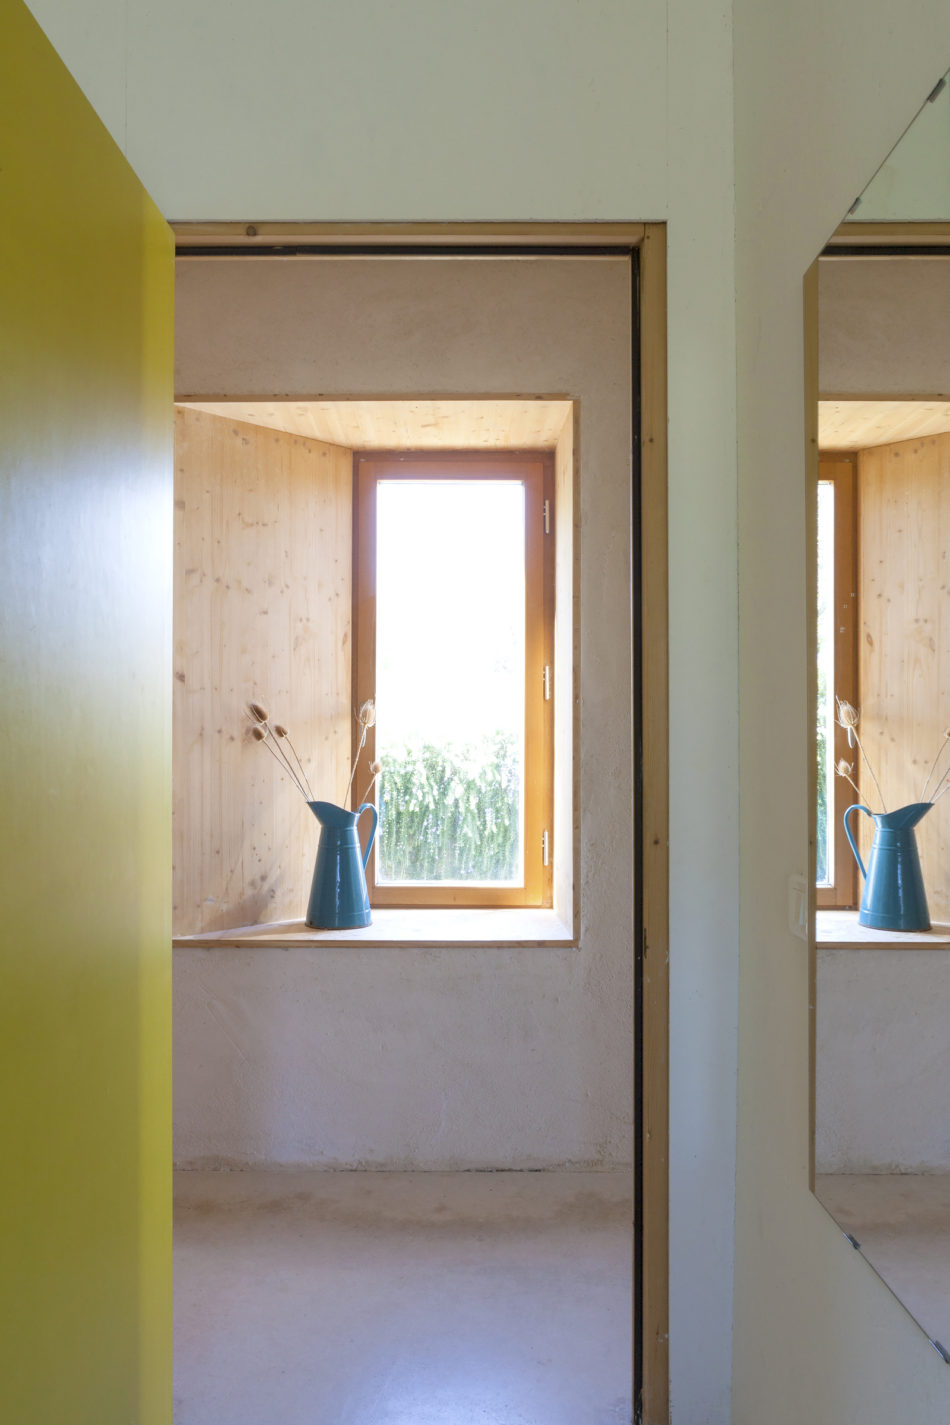 A hallway window with views onto the countryside